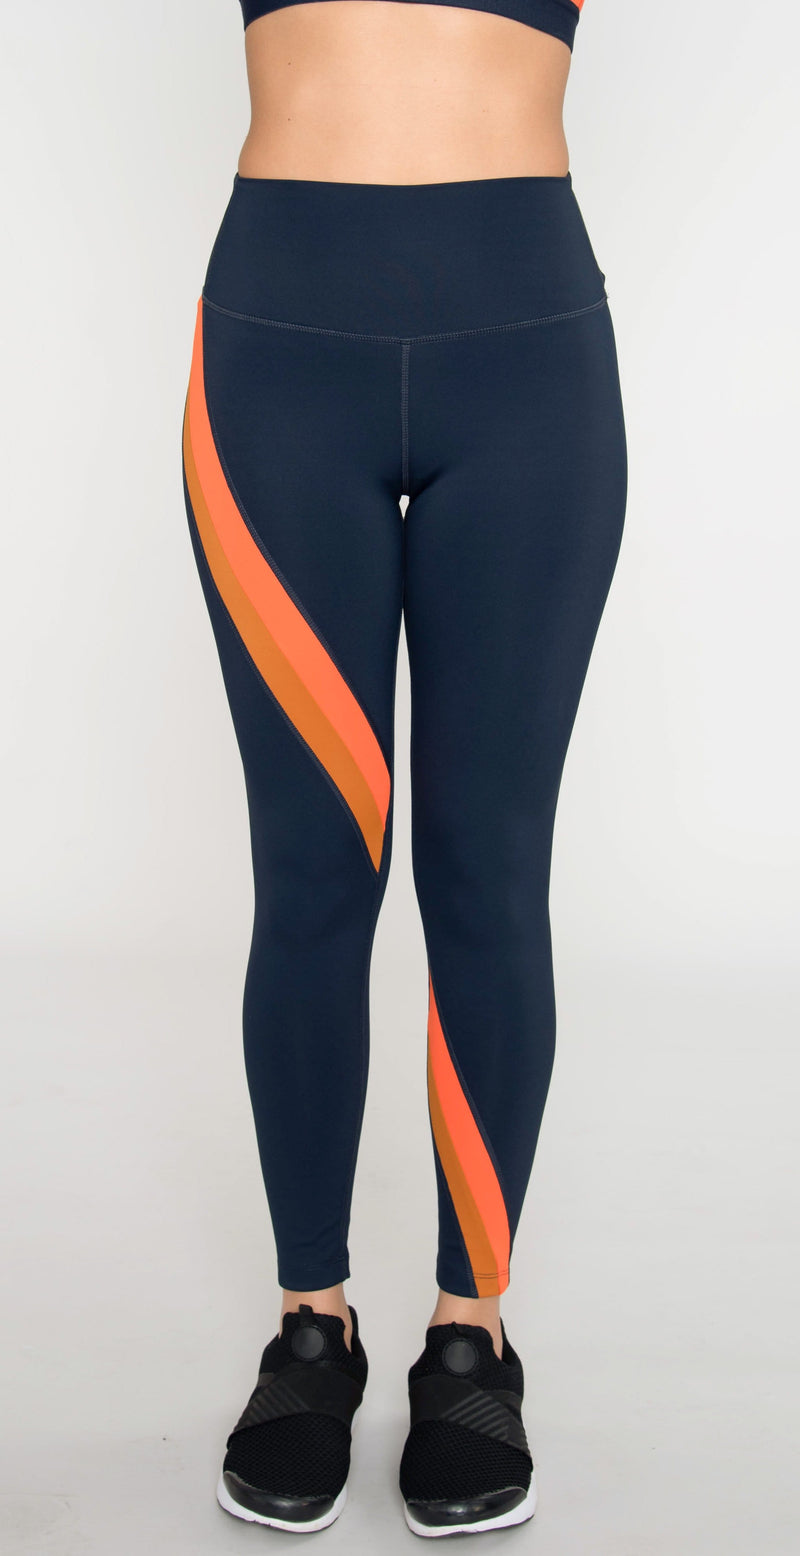 Splits59 Bella High Waist 7/8 Legging Indigo/Orange Multi